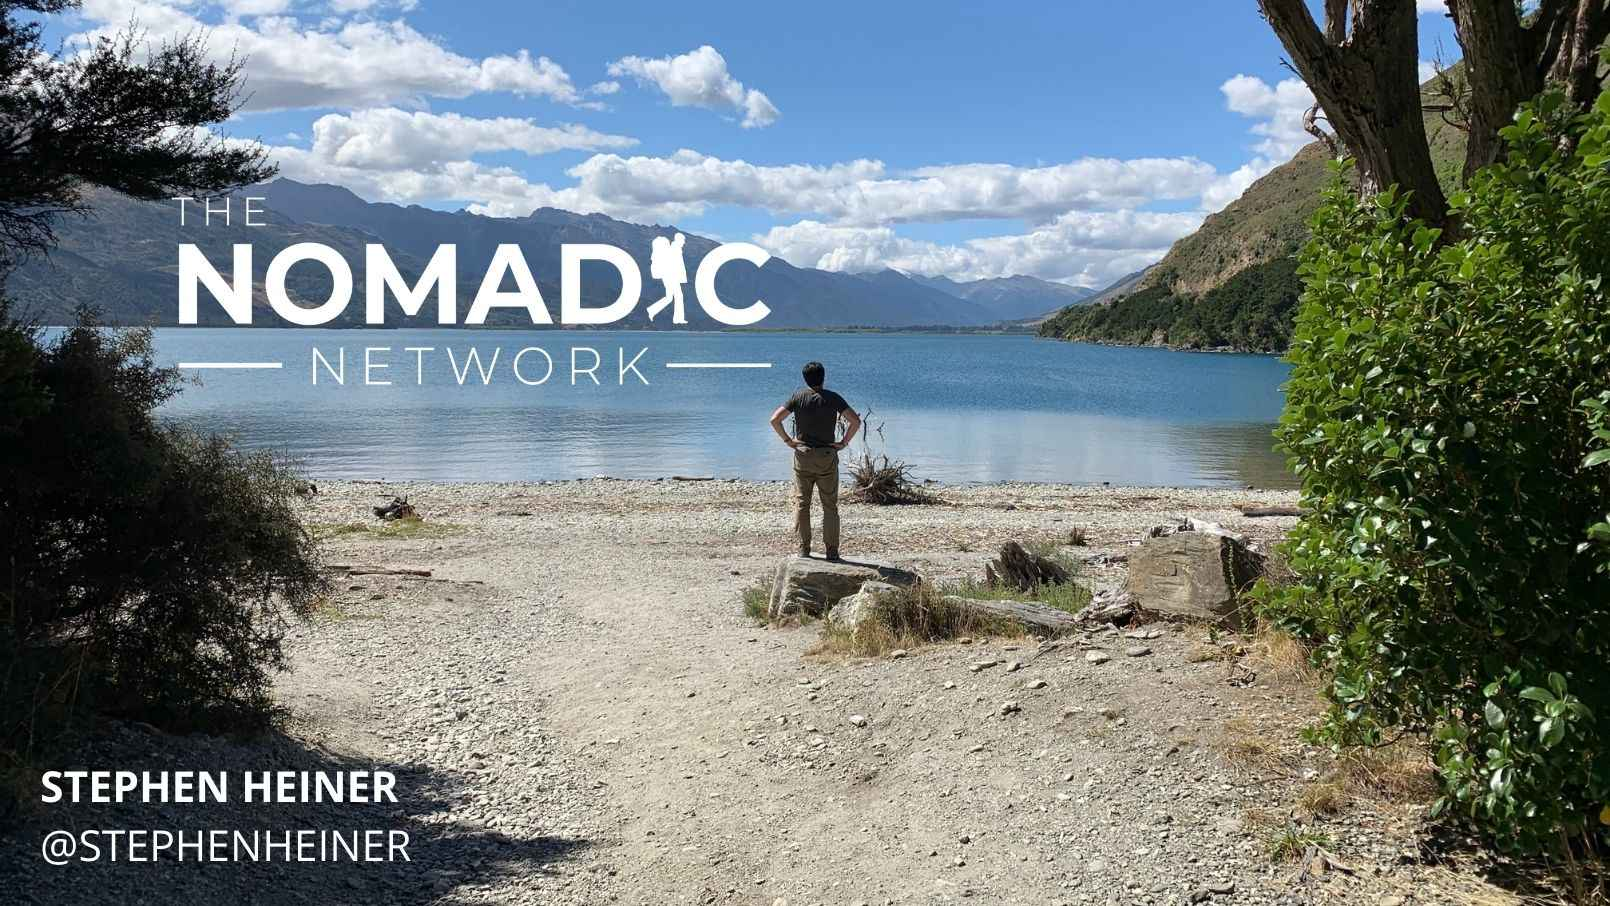 A solo male traveler in New Zealand